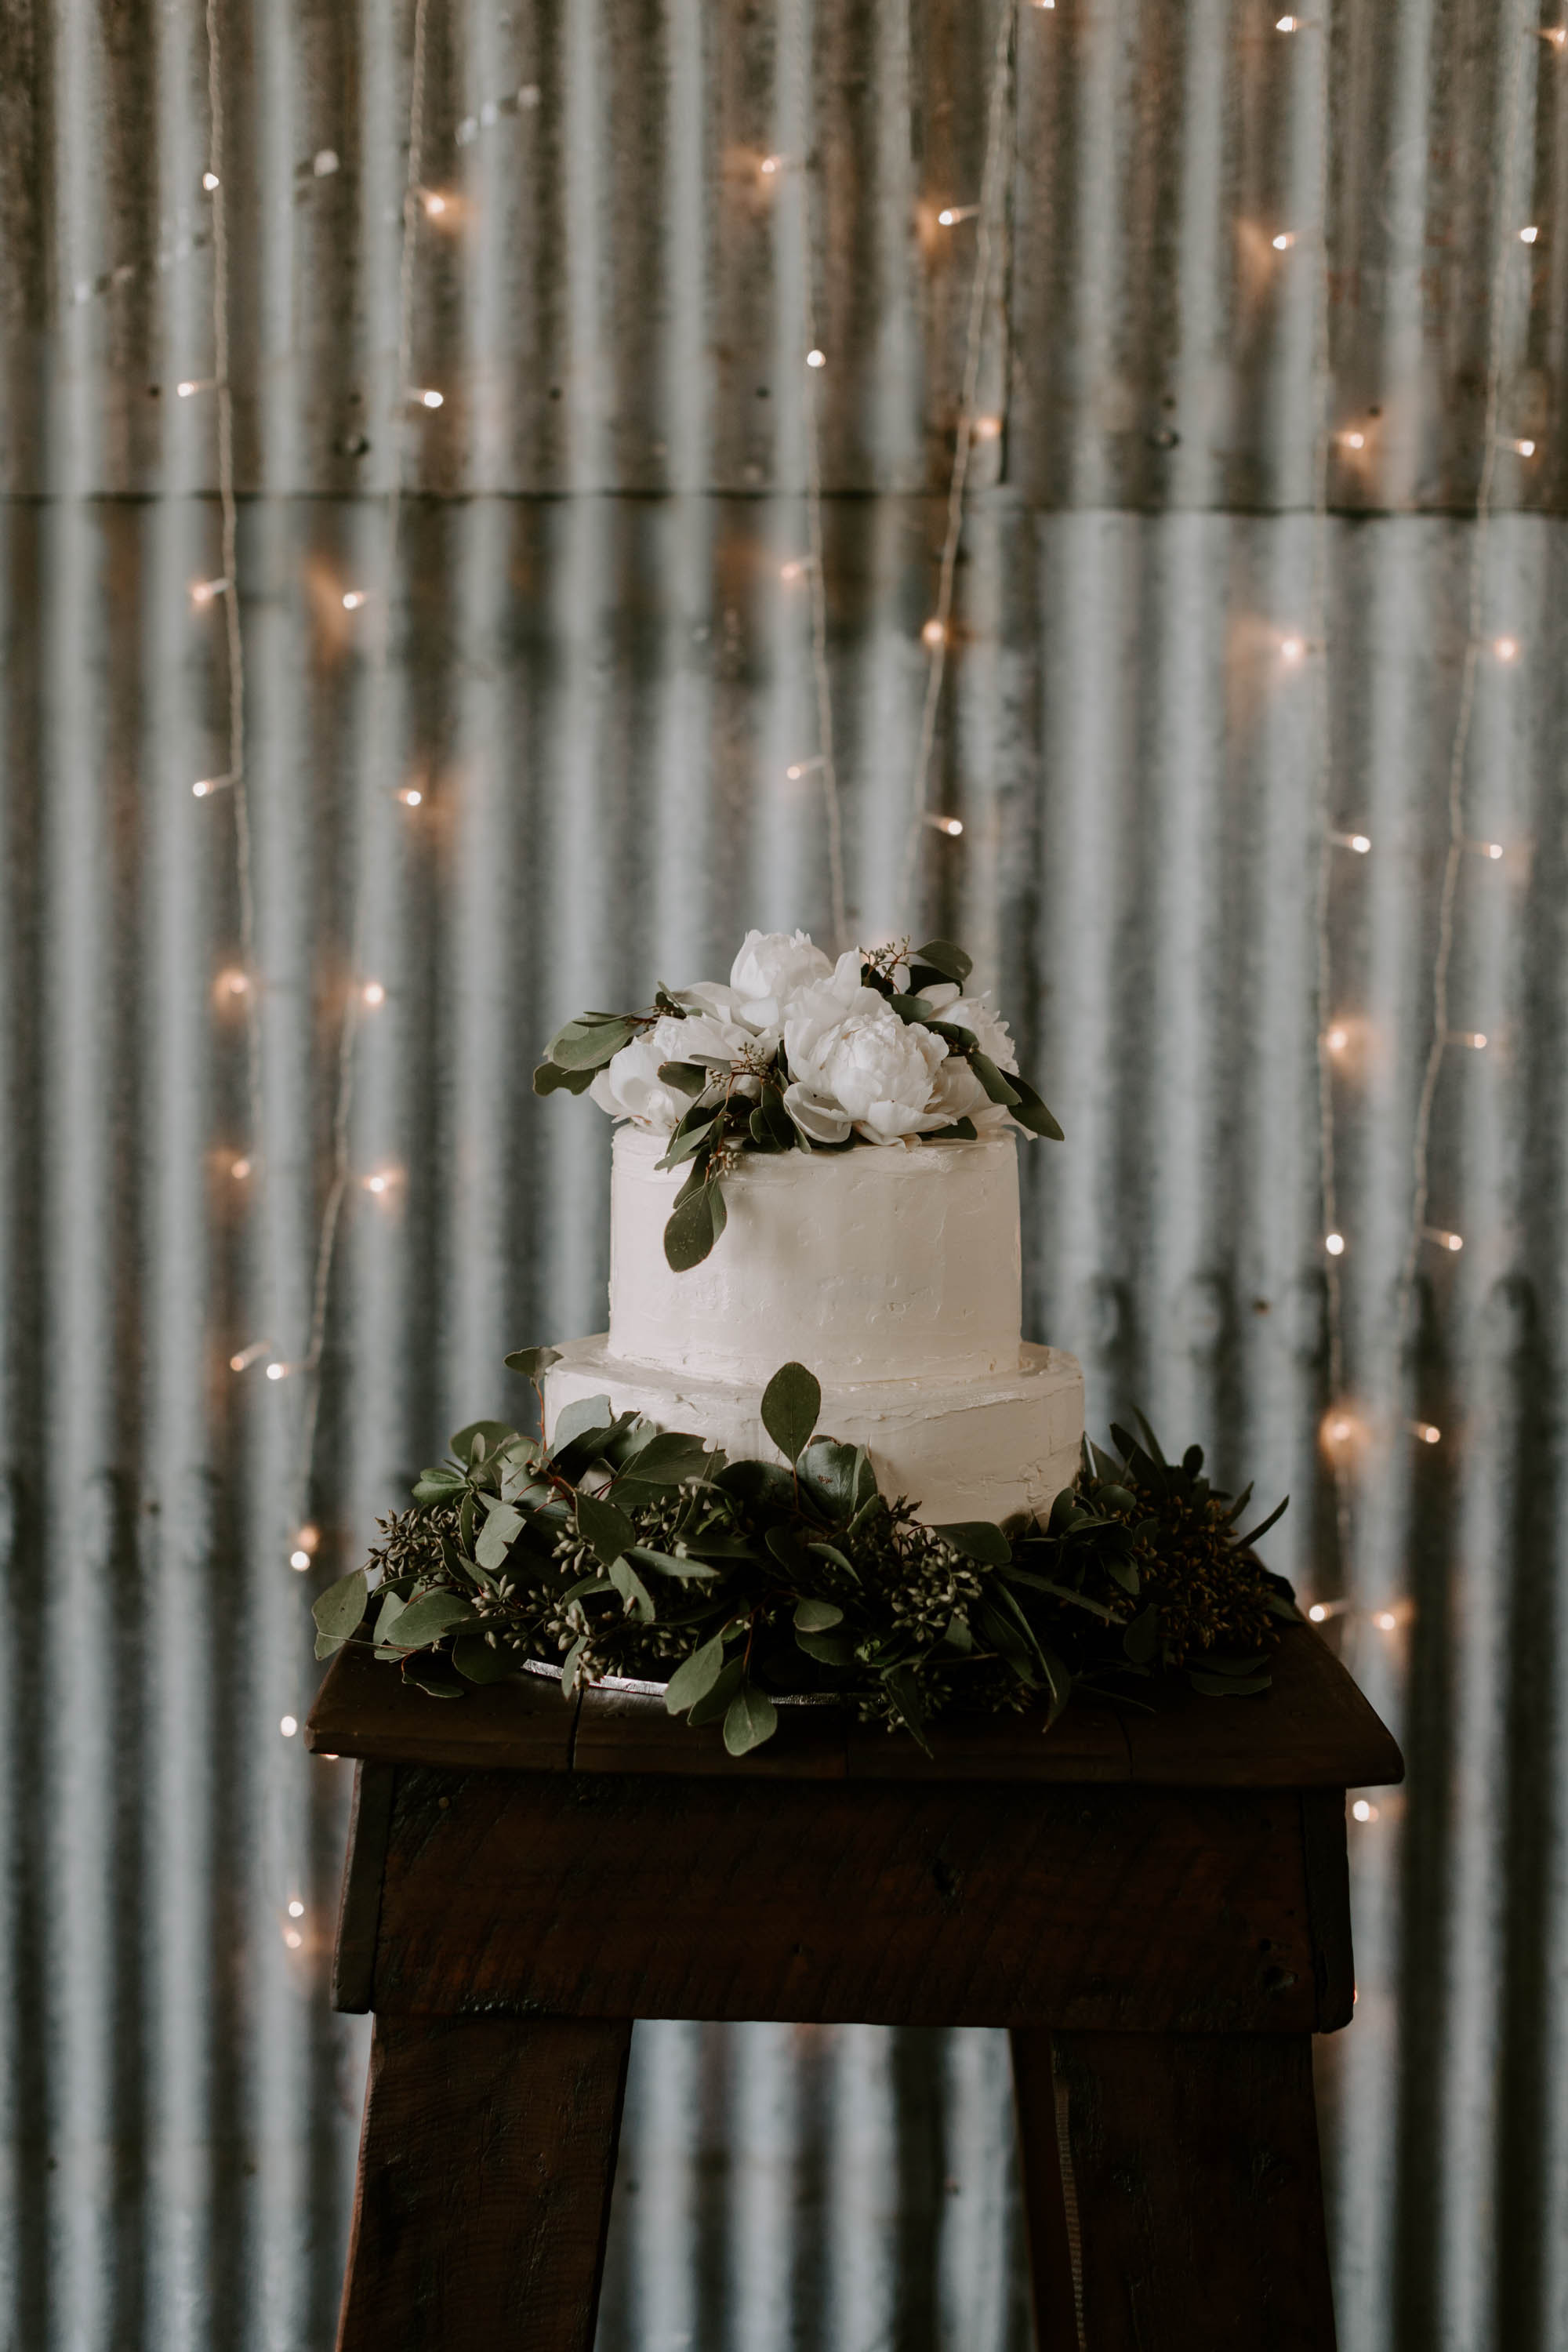 Wedding cake featuring white blooms and foliages